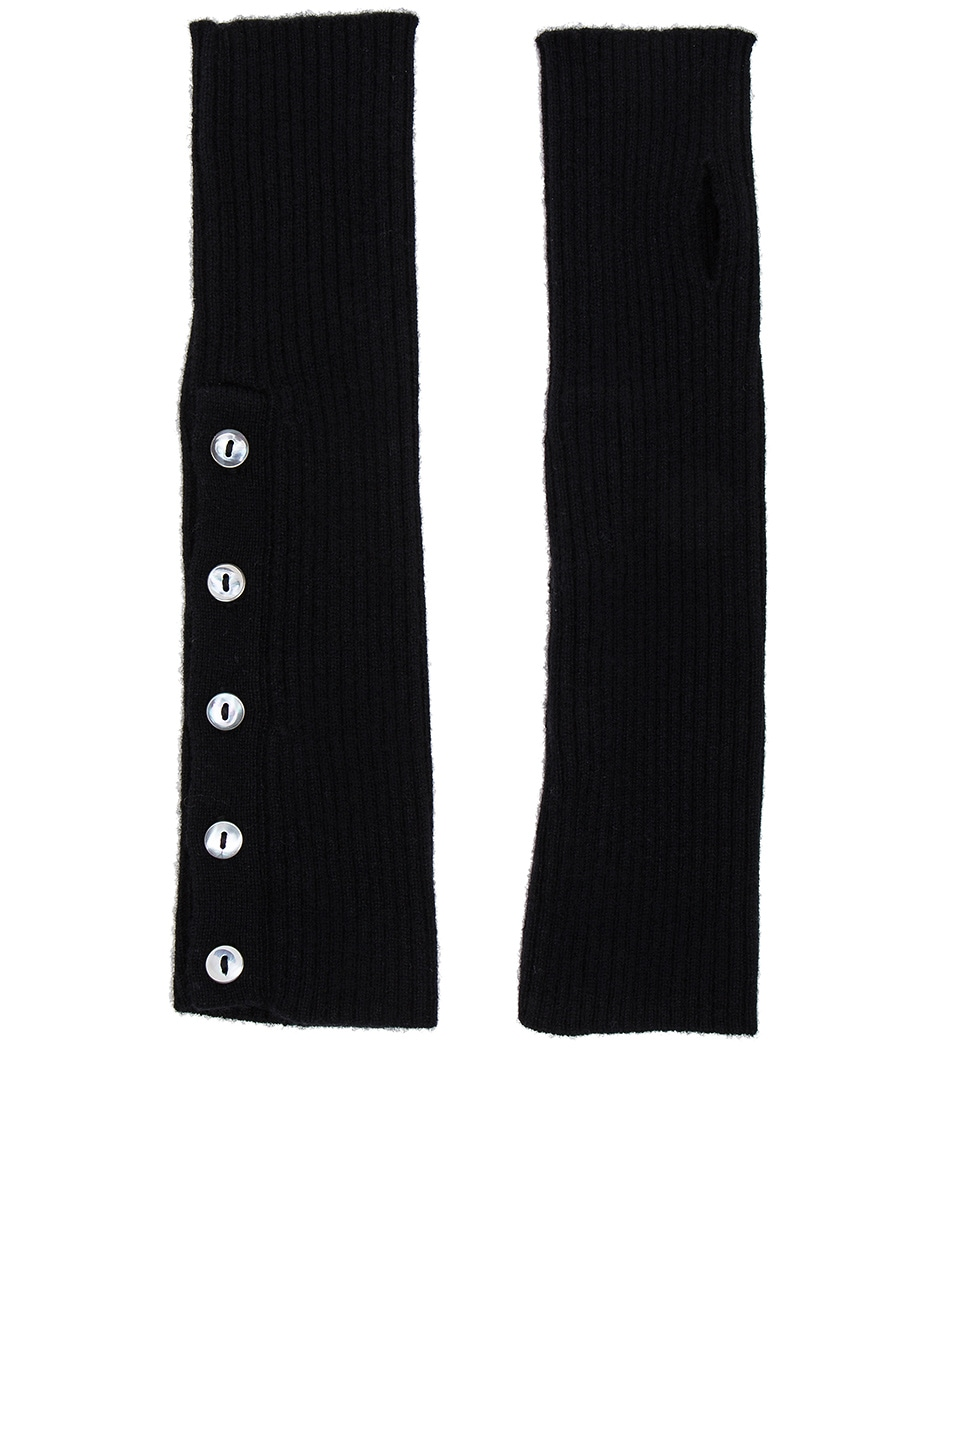 Buttoned Rib Arm Warmers by Autumn Cashmere